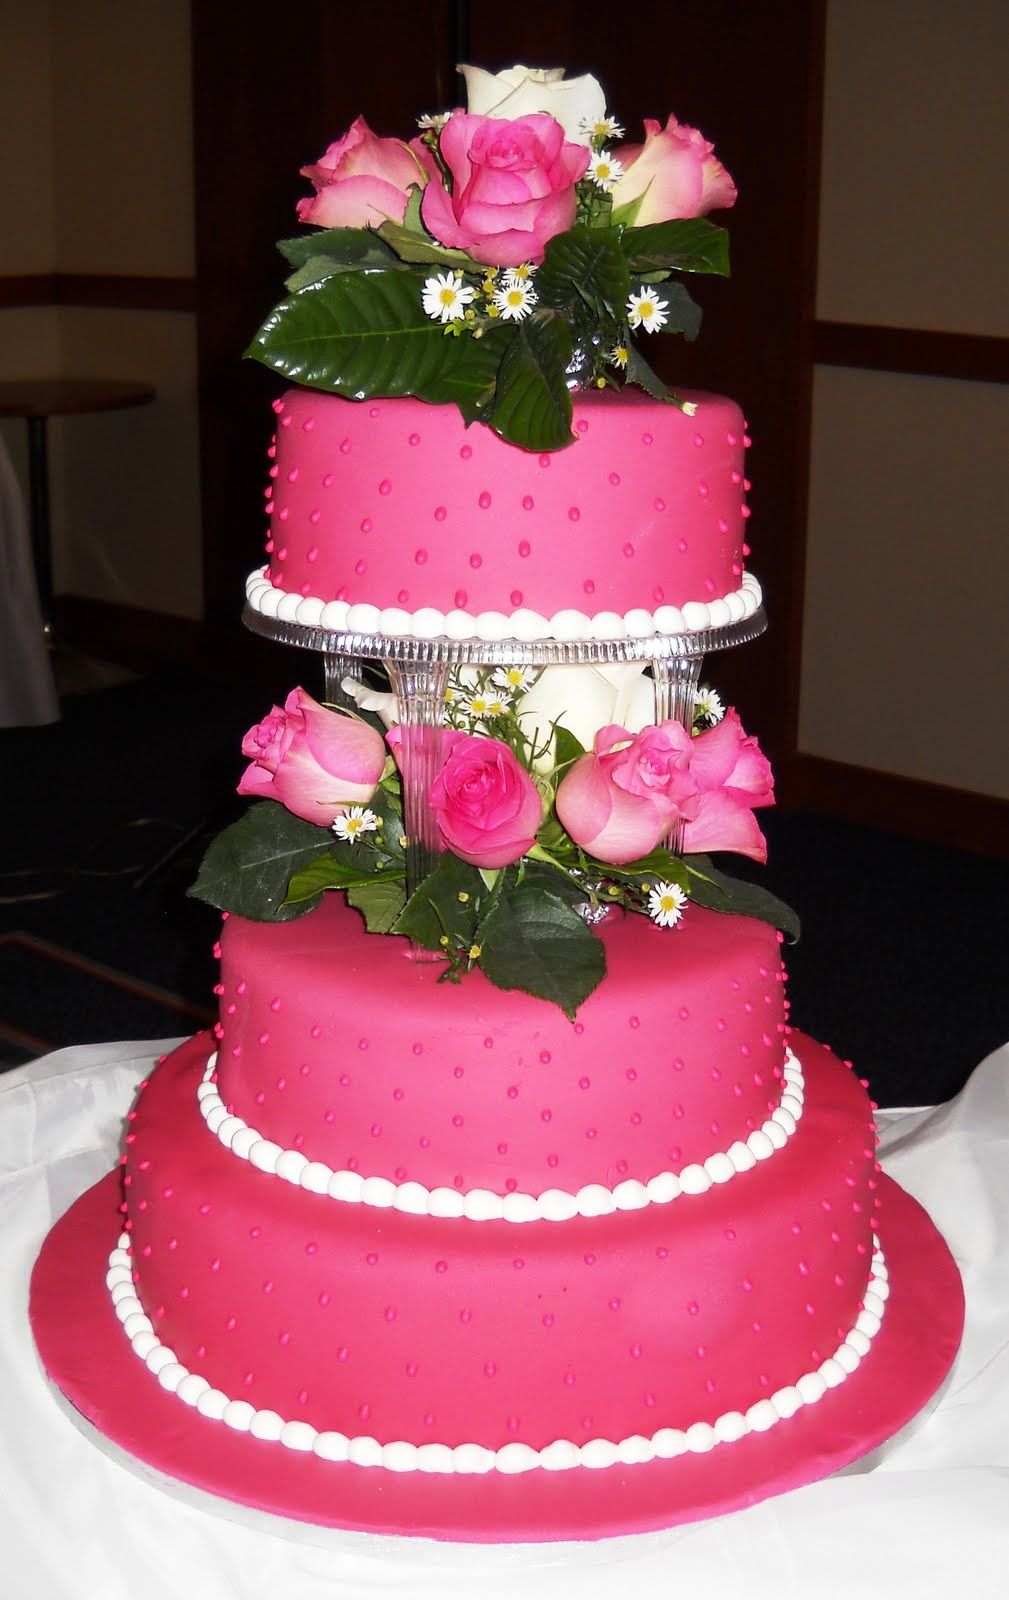 Jocelyns Wedding Cakes and More Debutantes Cakes